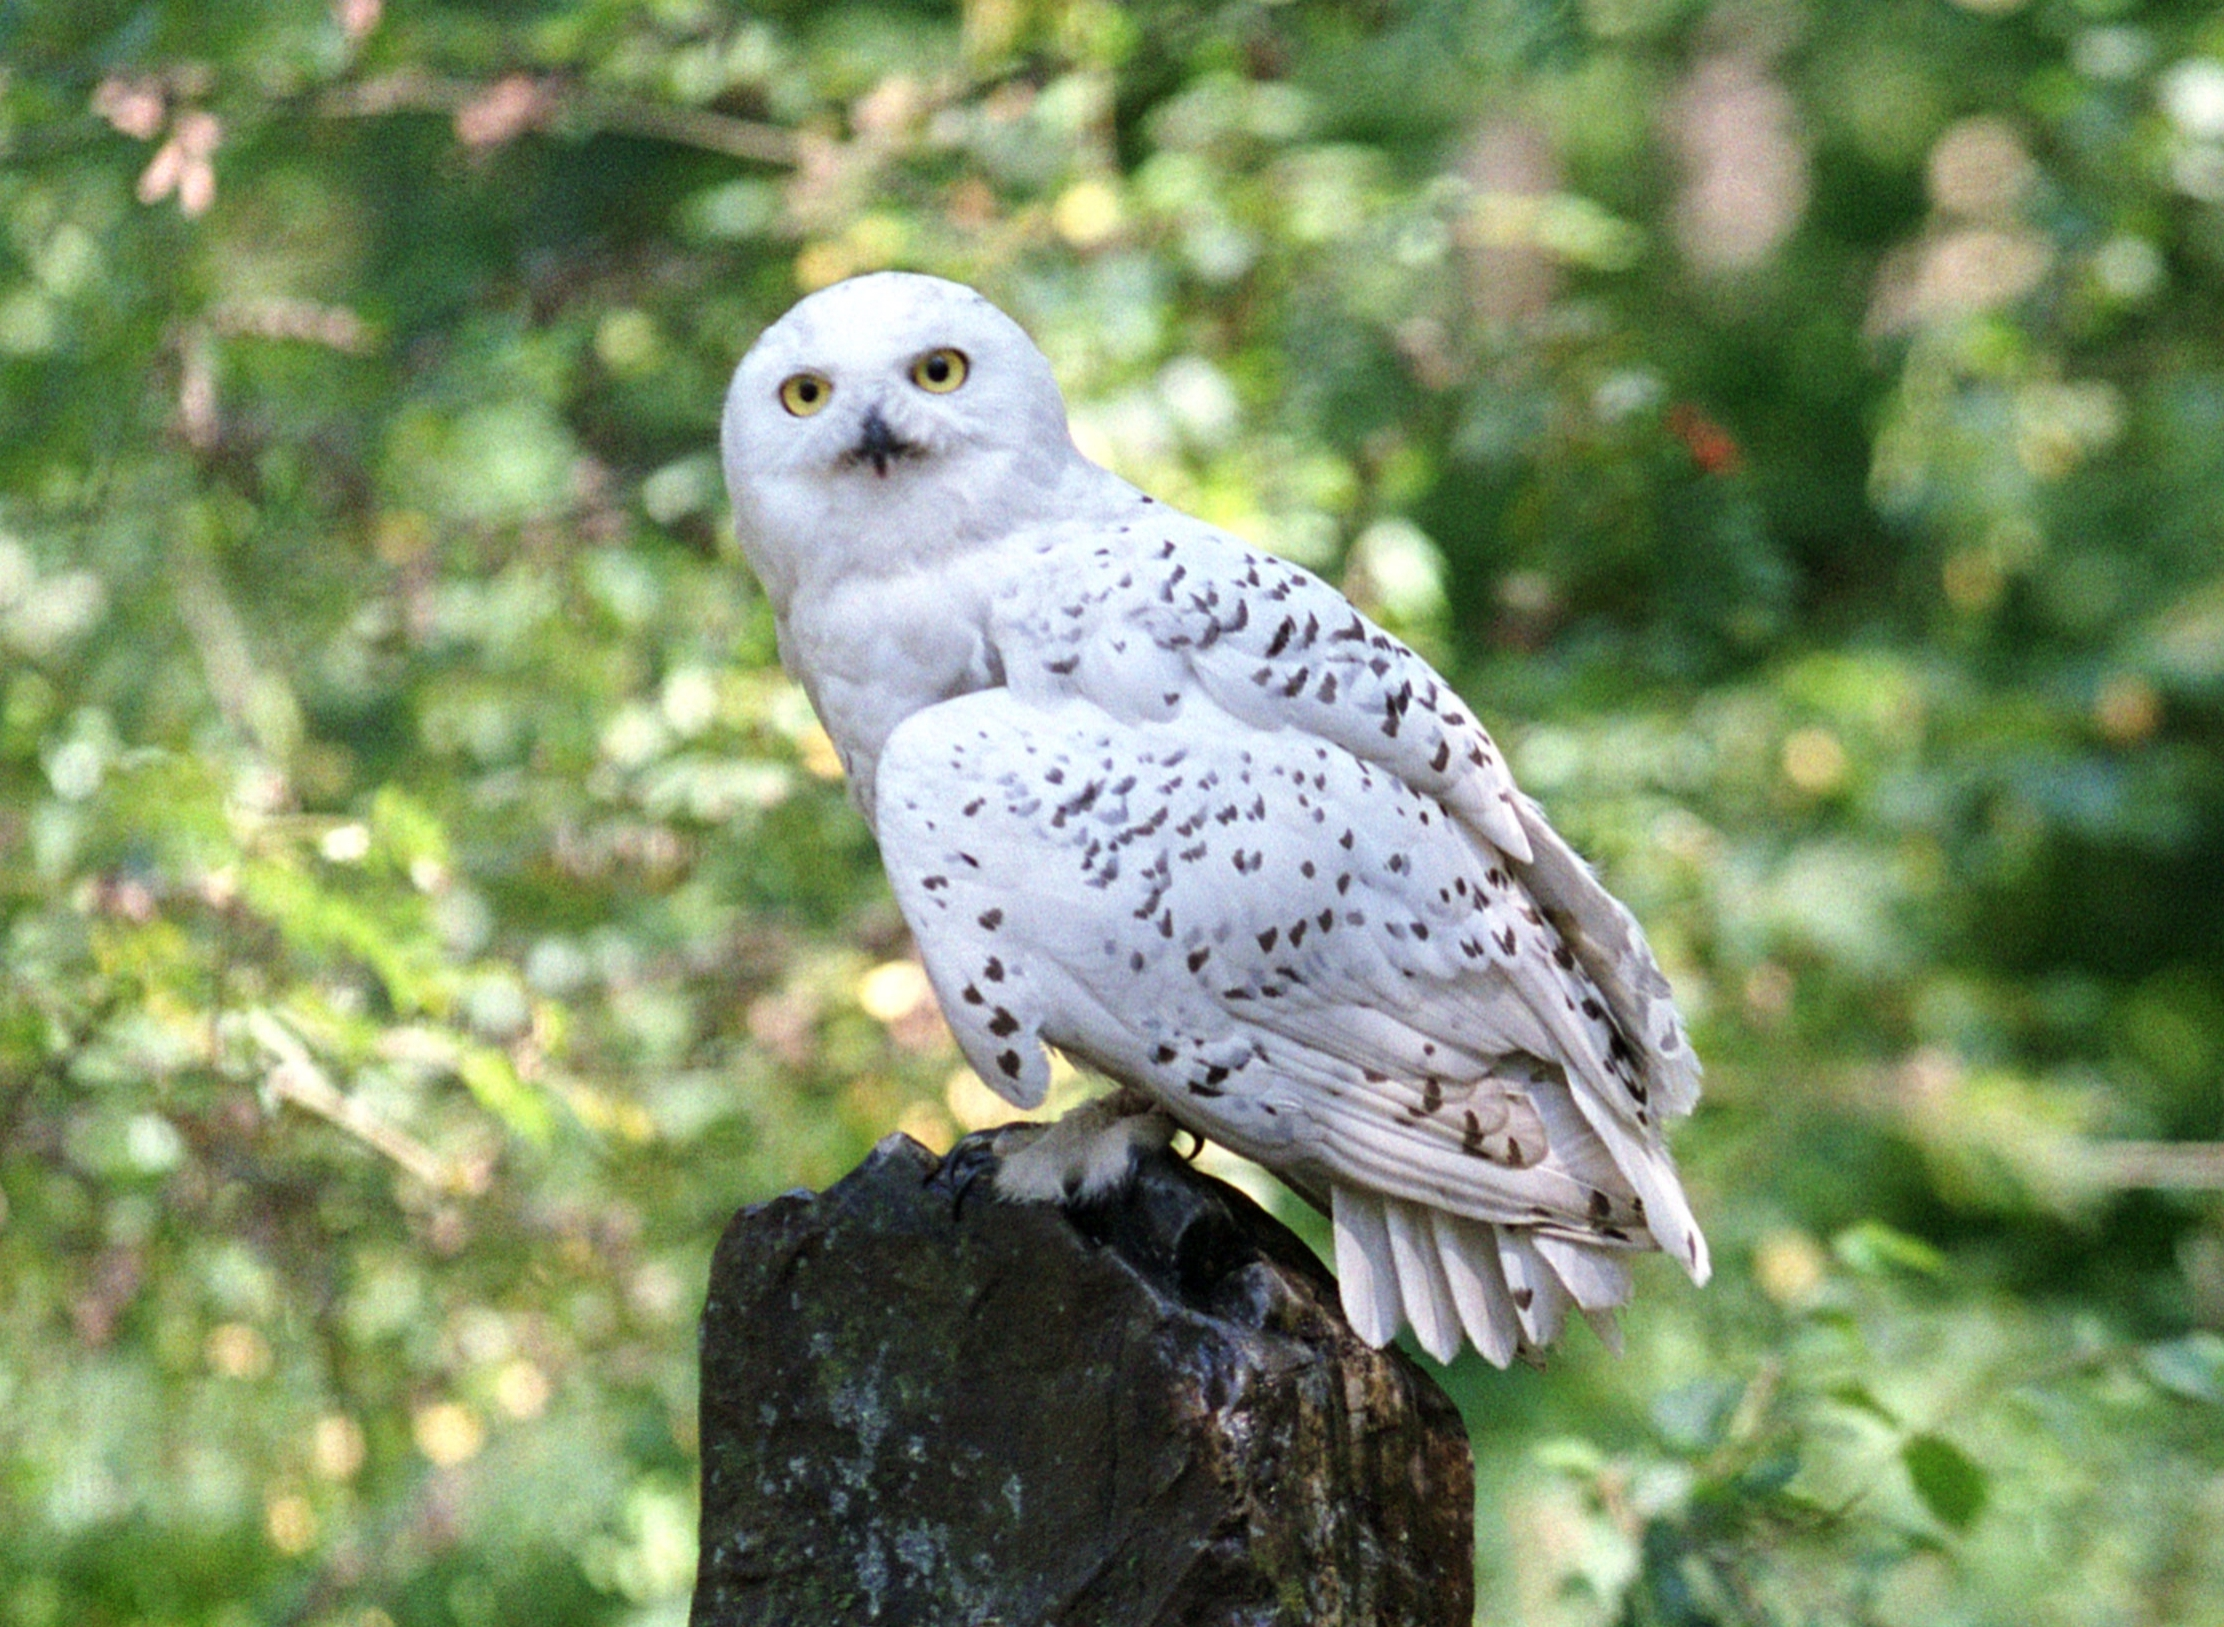 Hedwig in the forest